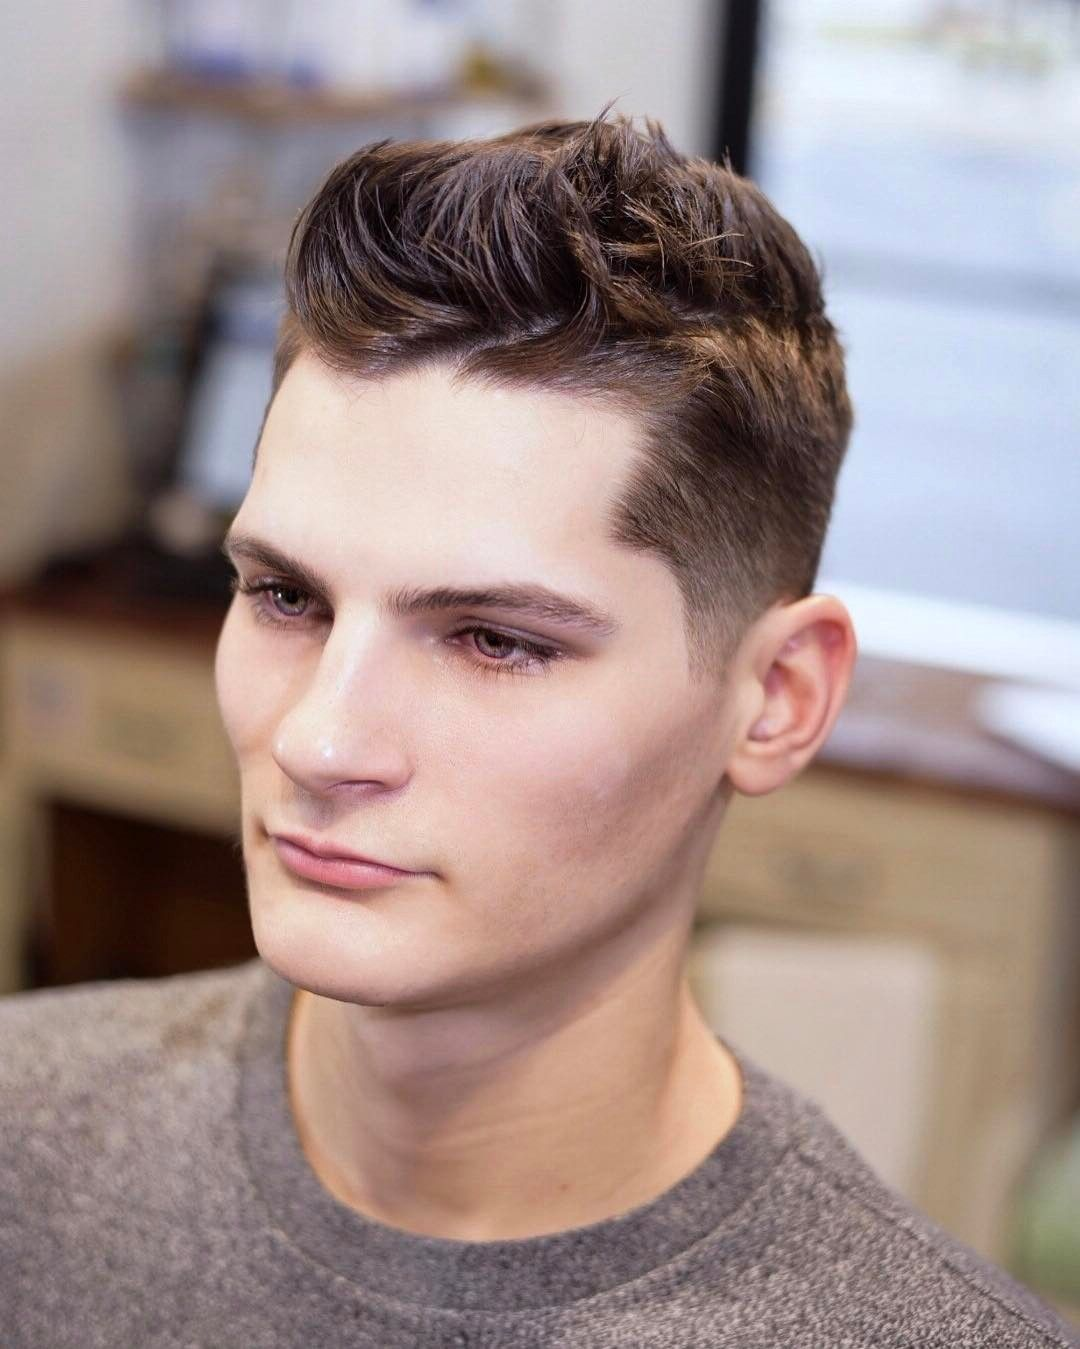 Edgy Disheveled hairstyles for men  Easy mens hairstyles, Mens